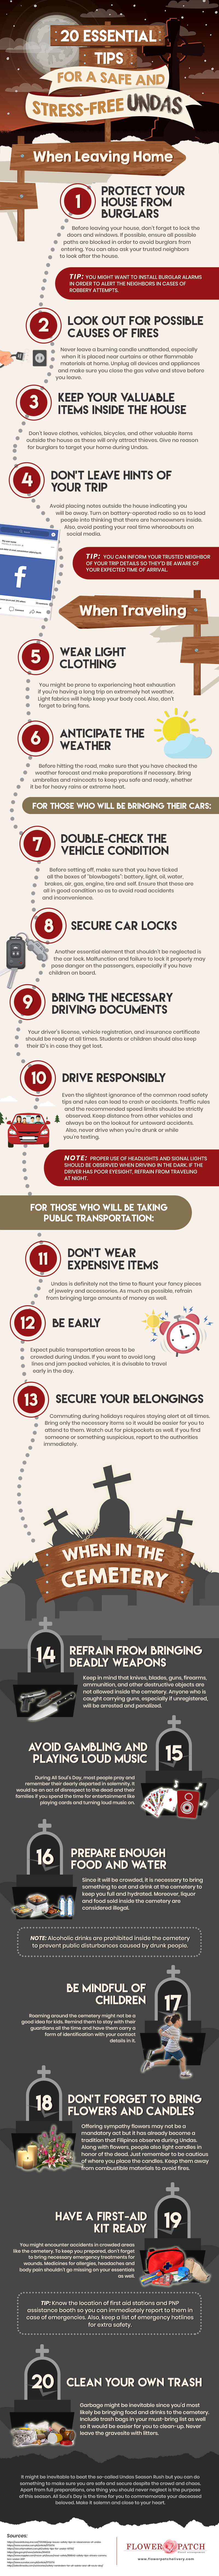 20 Essential Tips for a Safe and Stress-free Undas Infographic